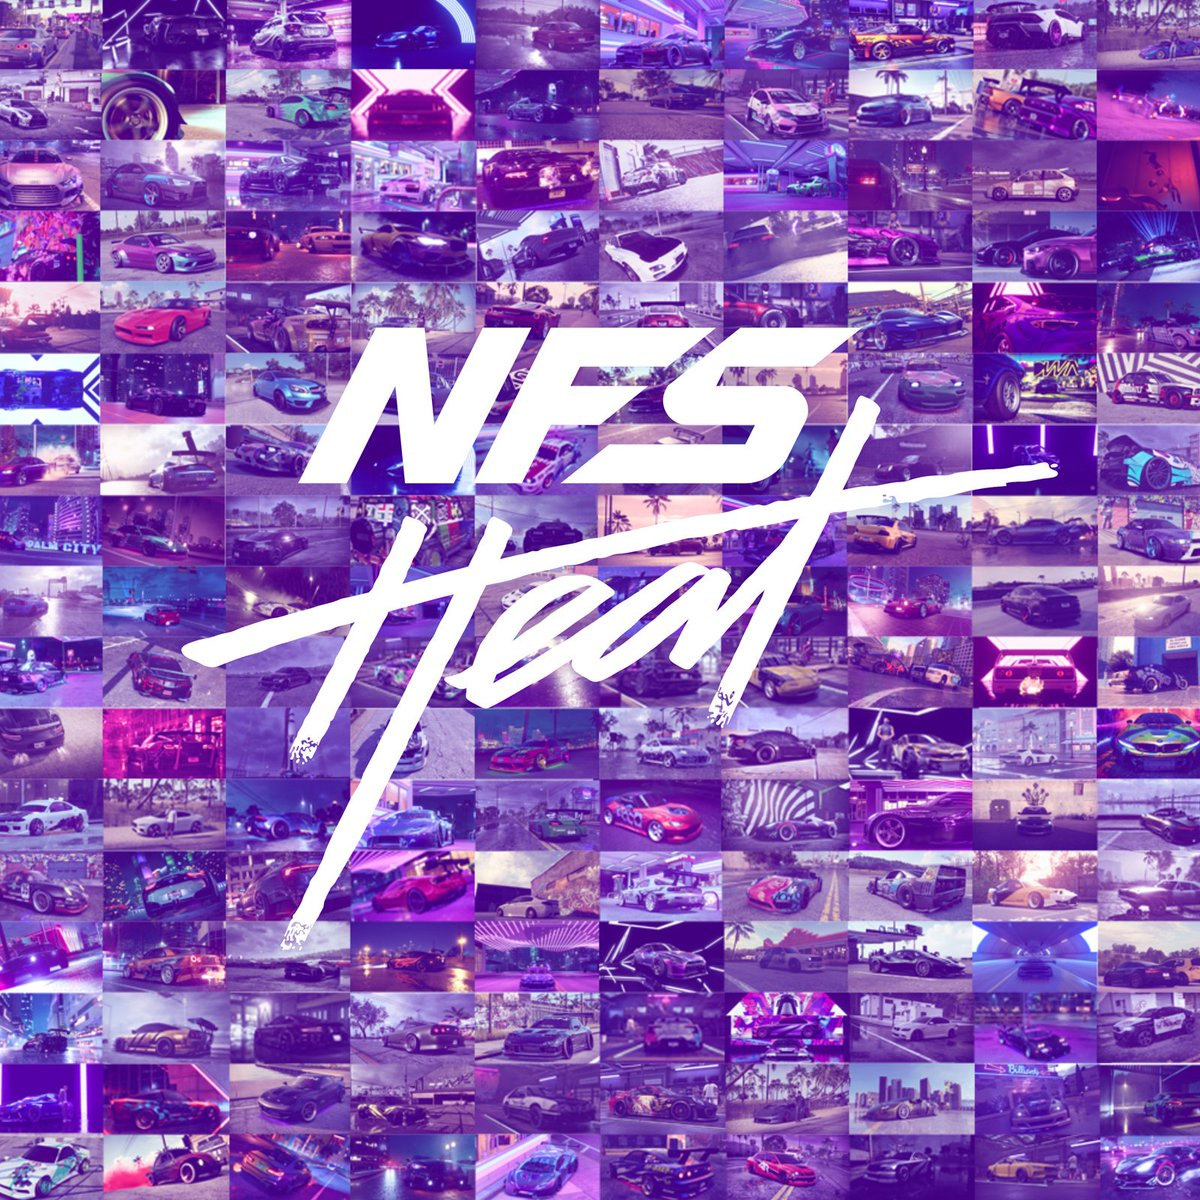 Its been one week since #NFSHeat first released on Origin /EA Access, and youve been knocking it out of the park with your creations. Its amazing to see the passion that goes into your builds, your wraps and your content. Thank you, and keep it coming. See you in Palm City!